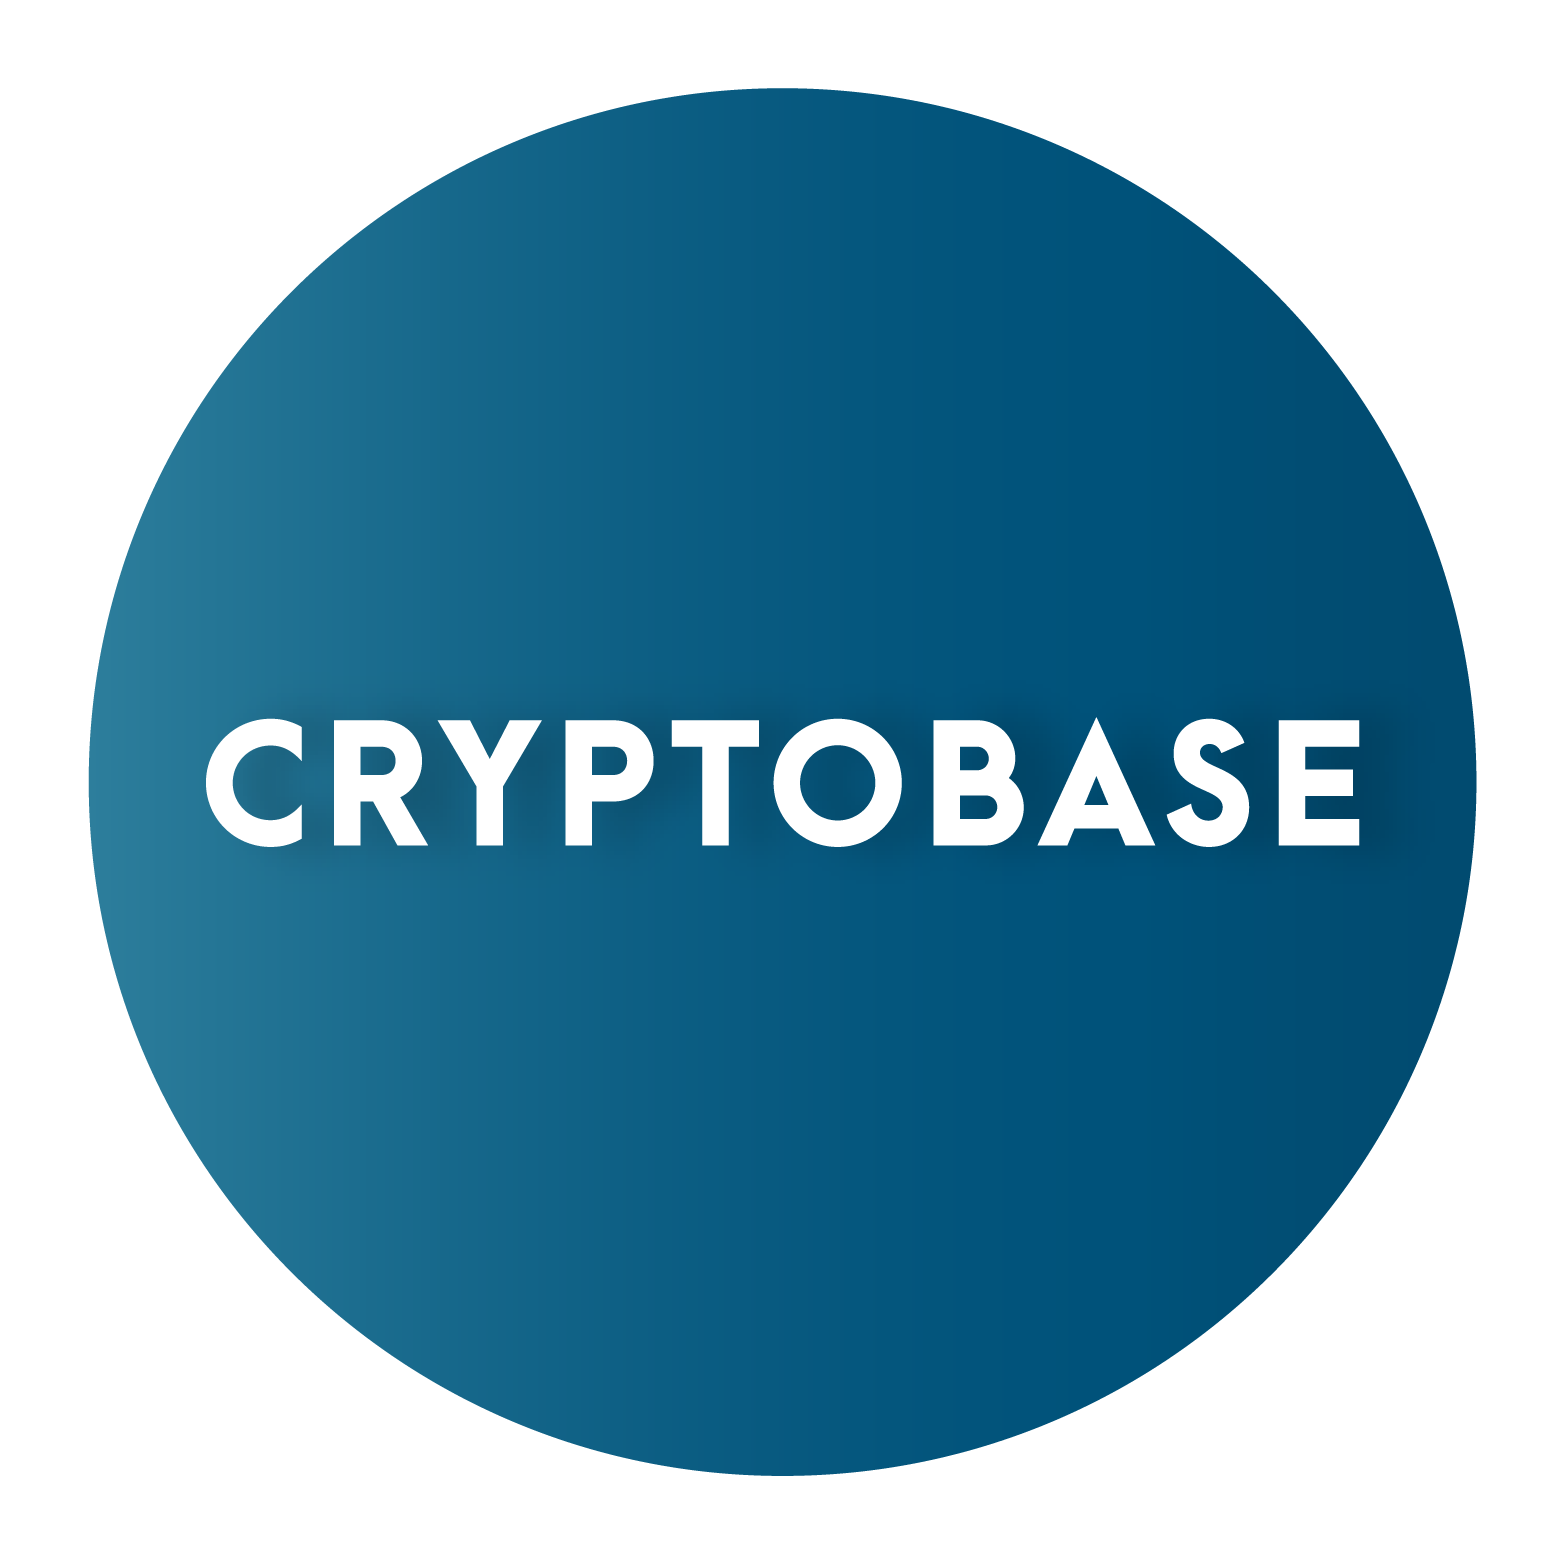 Cryptocurrency Exchange - THE CRYPTOBASE